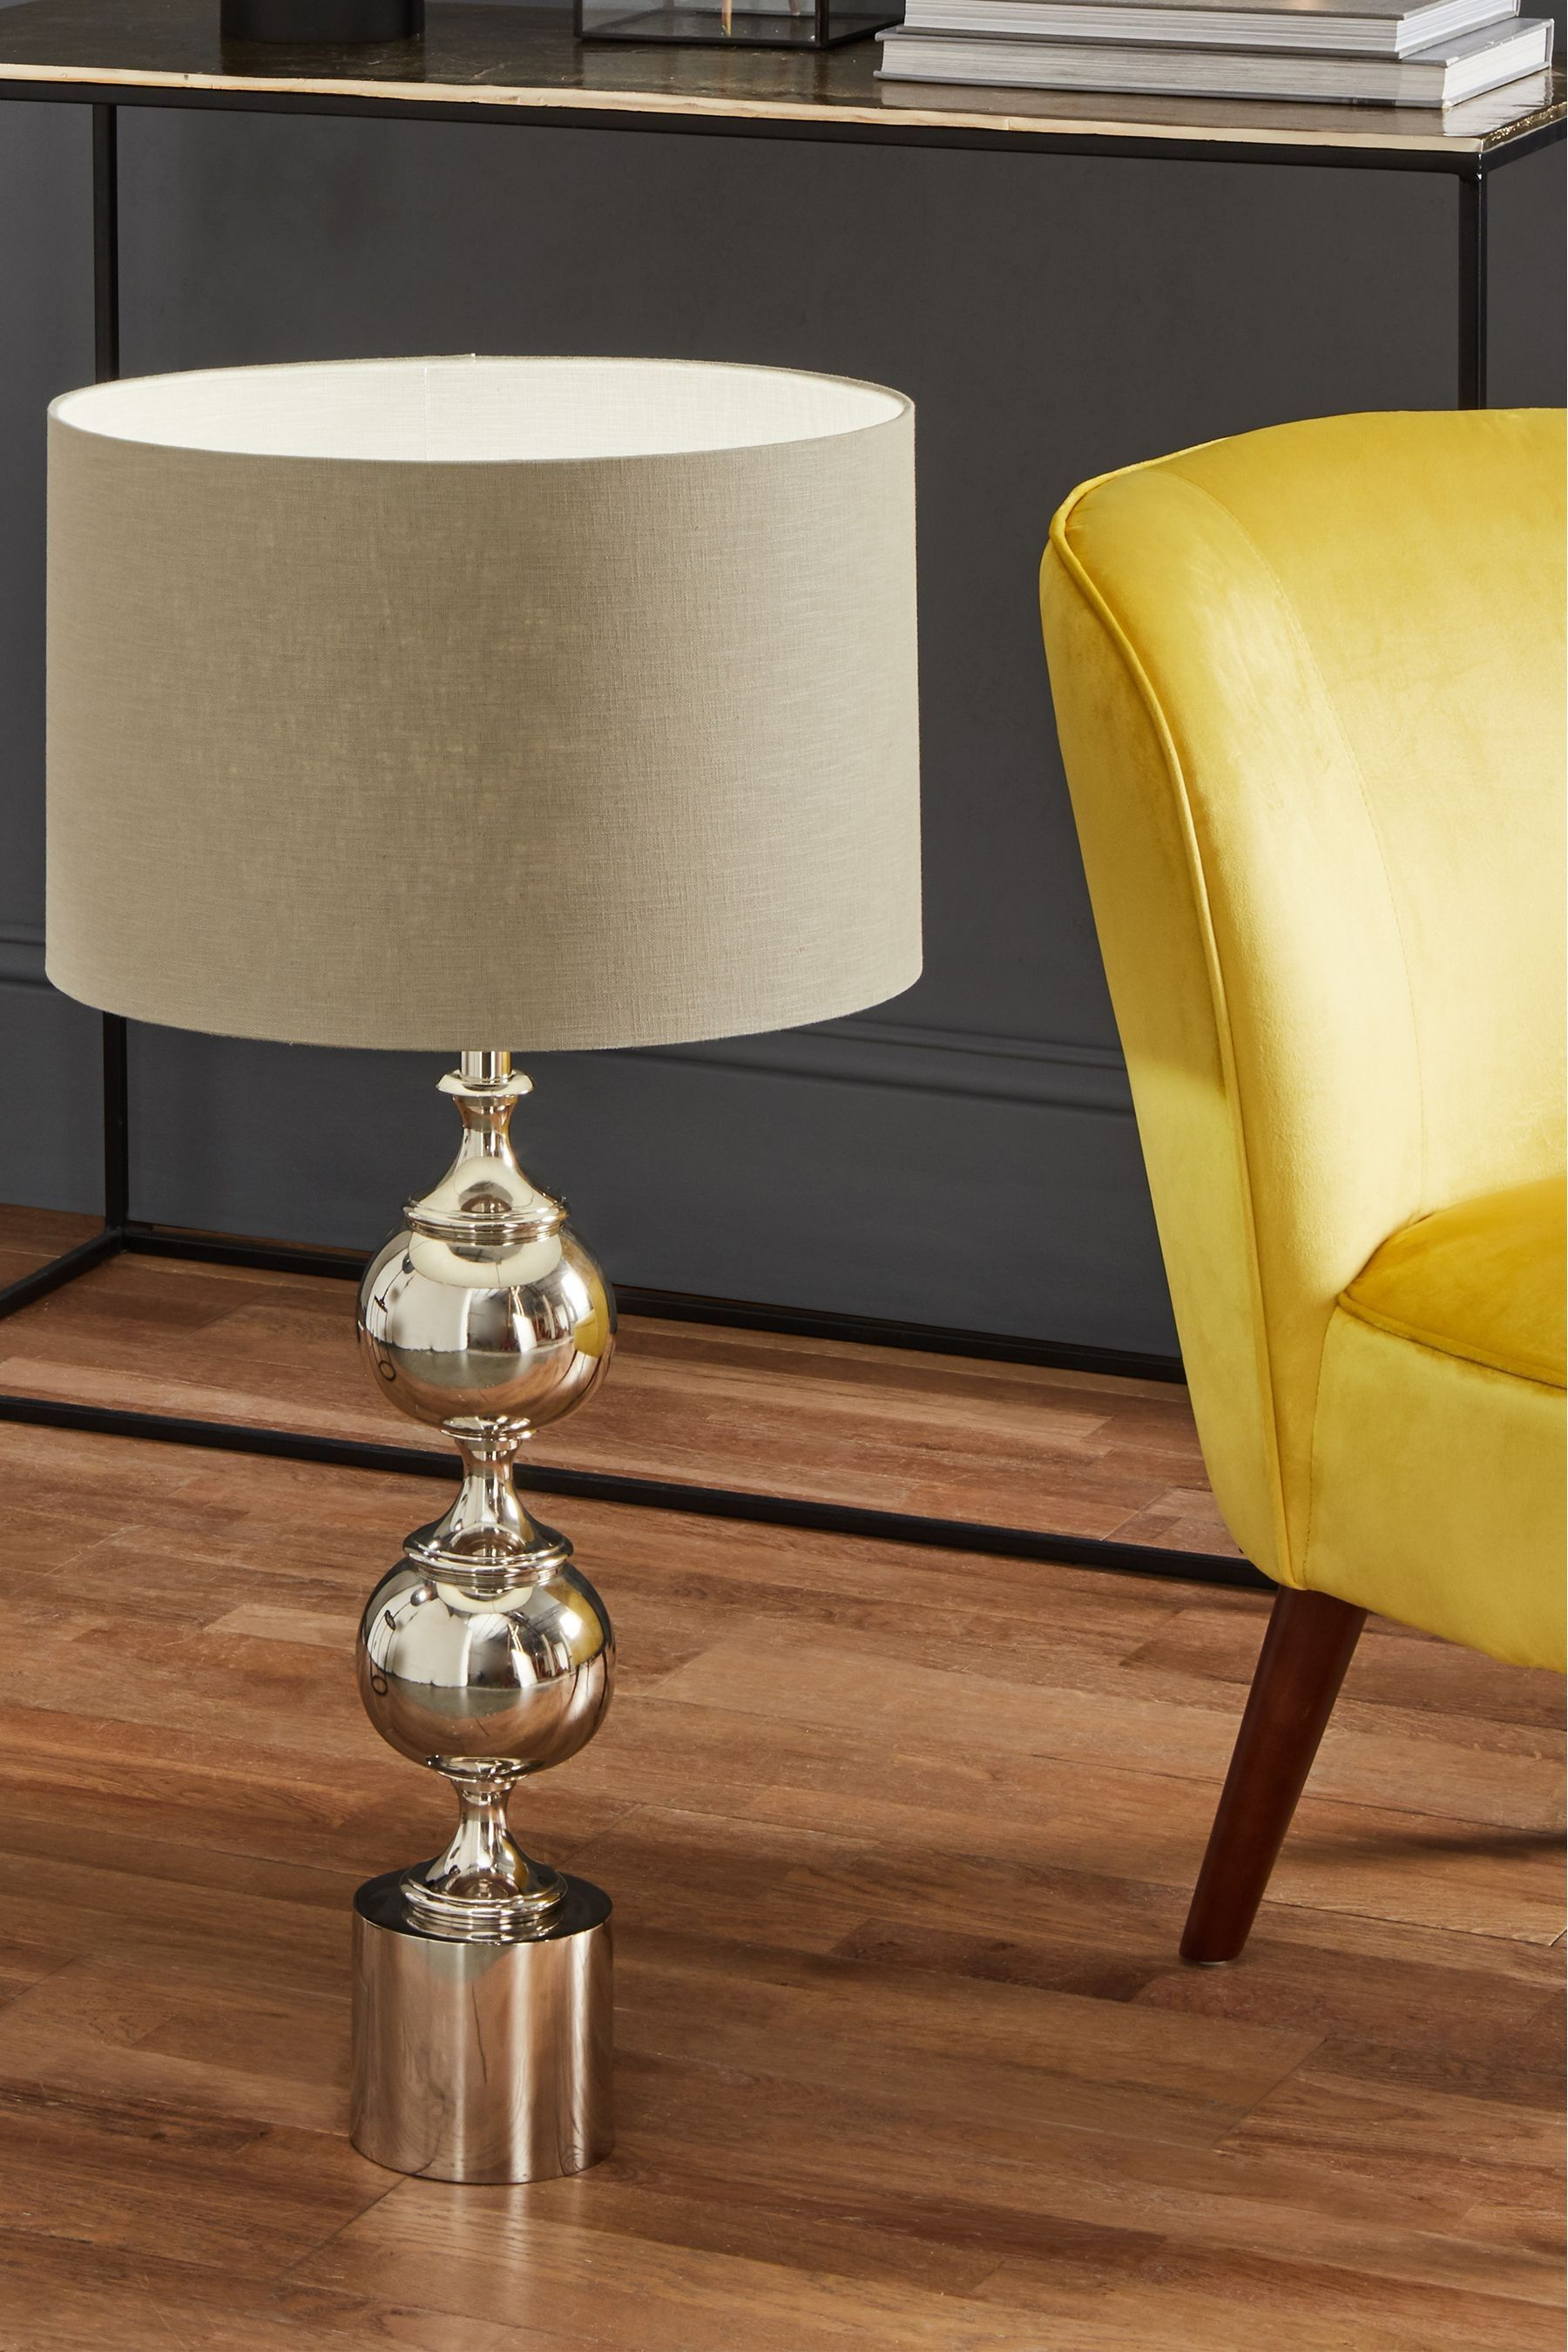 Asilah Silver Aluminium Tall Footed Table Lamp By Pacific Lighting